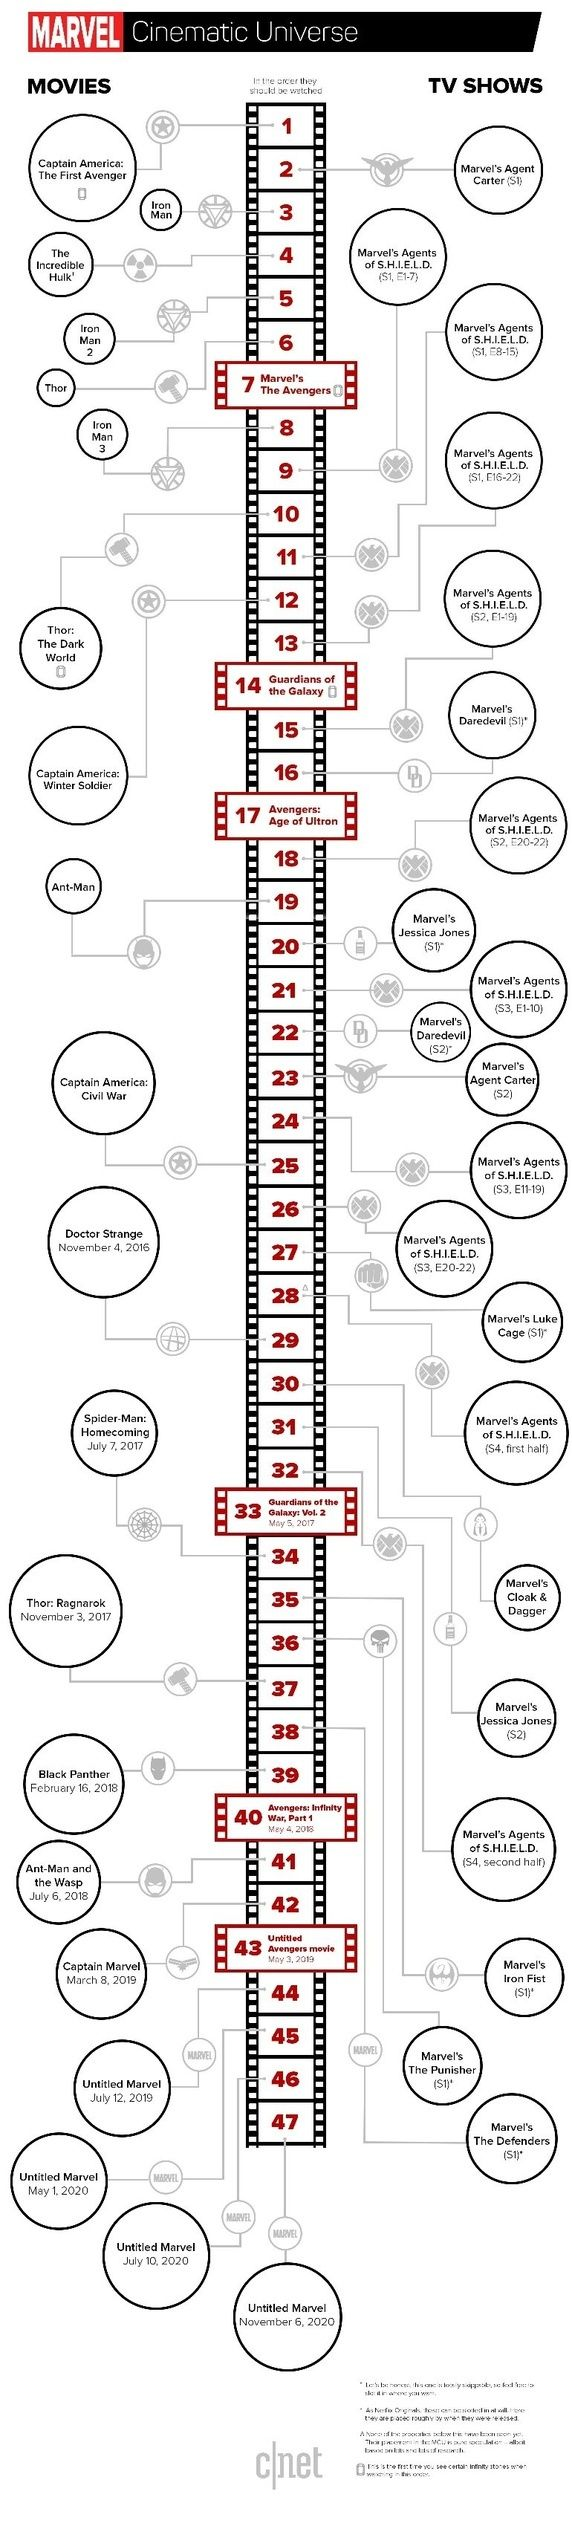 In which order should one watch all the marvel movies (and TV shows) in order to understand the timeline well? - Quora